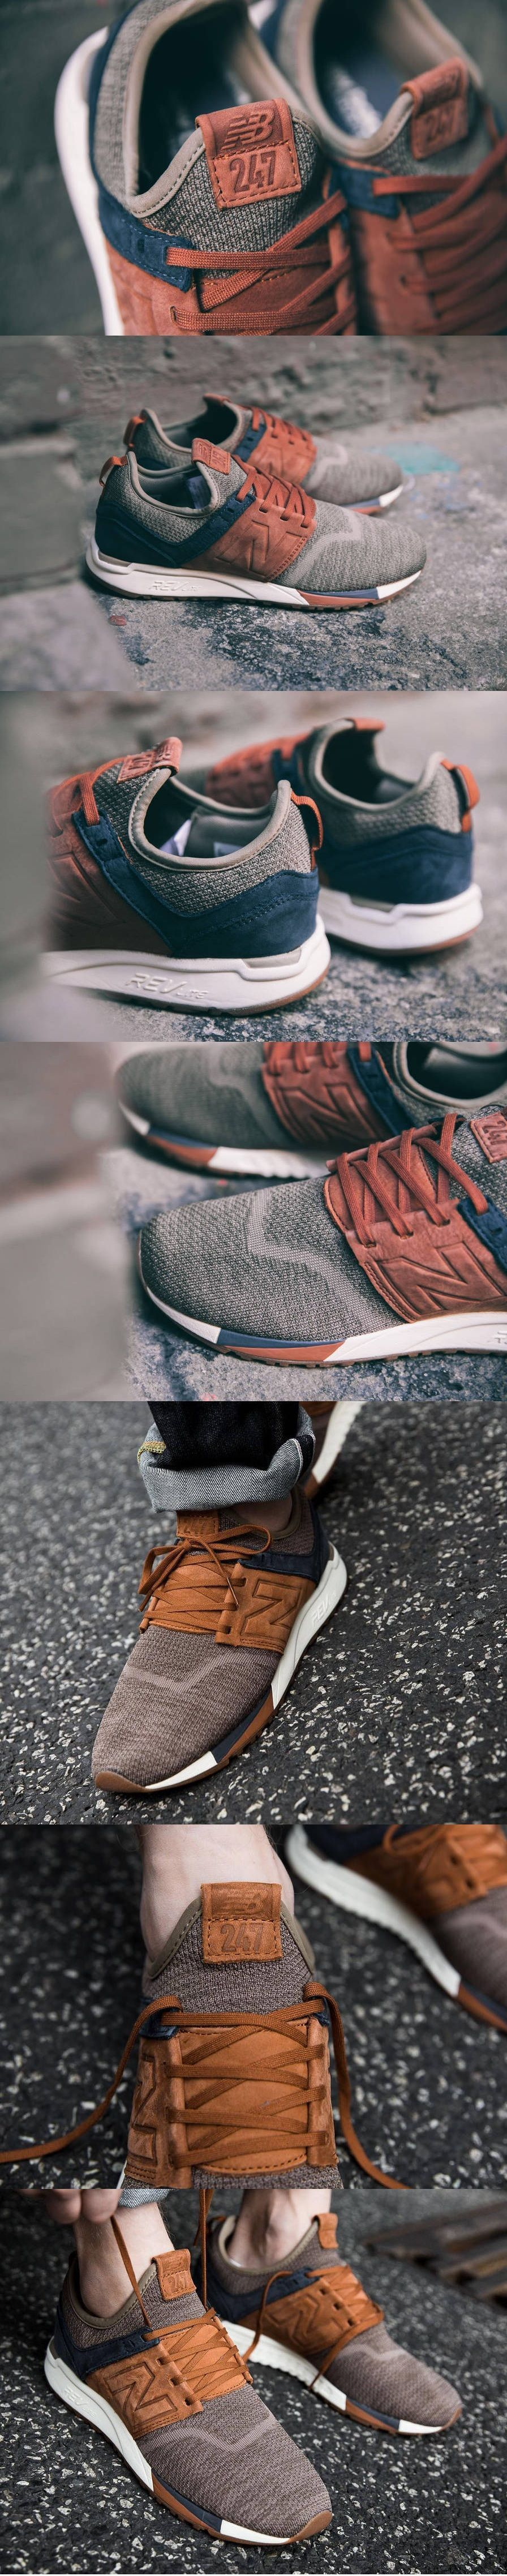 NewBalance 247 LB 'Brown https://www.size.co.uk/product/brown-new ...